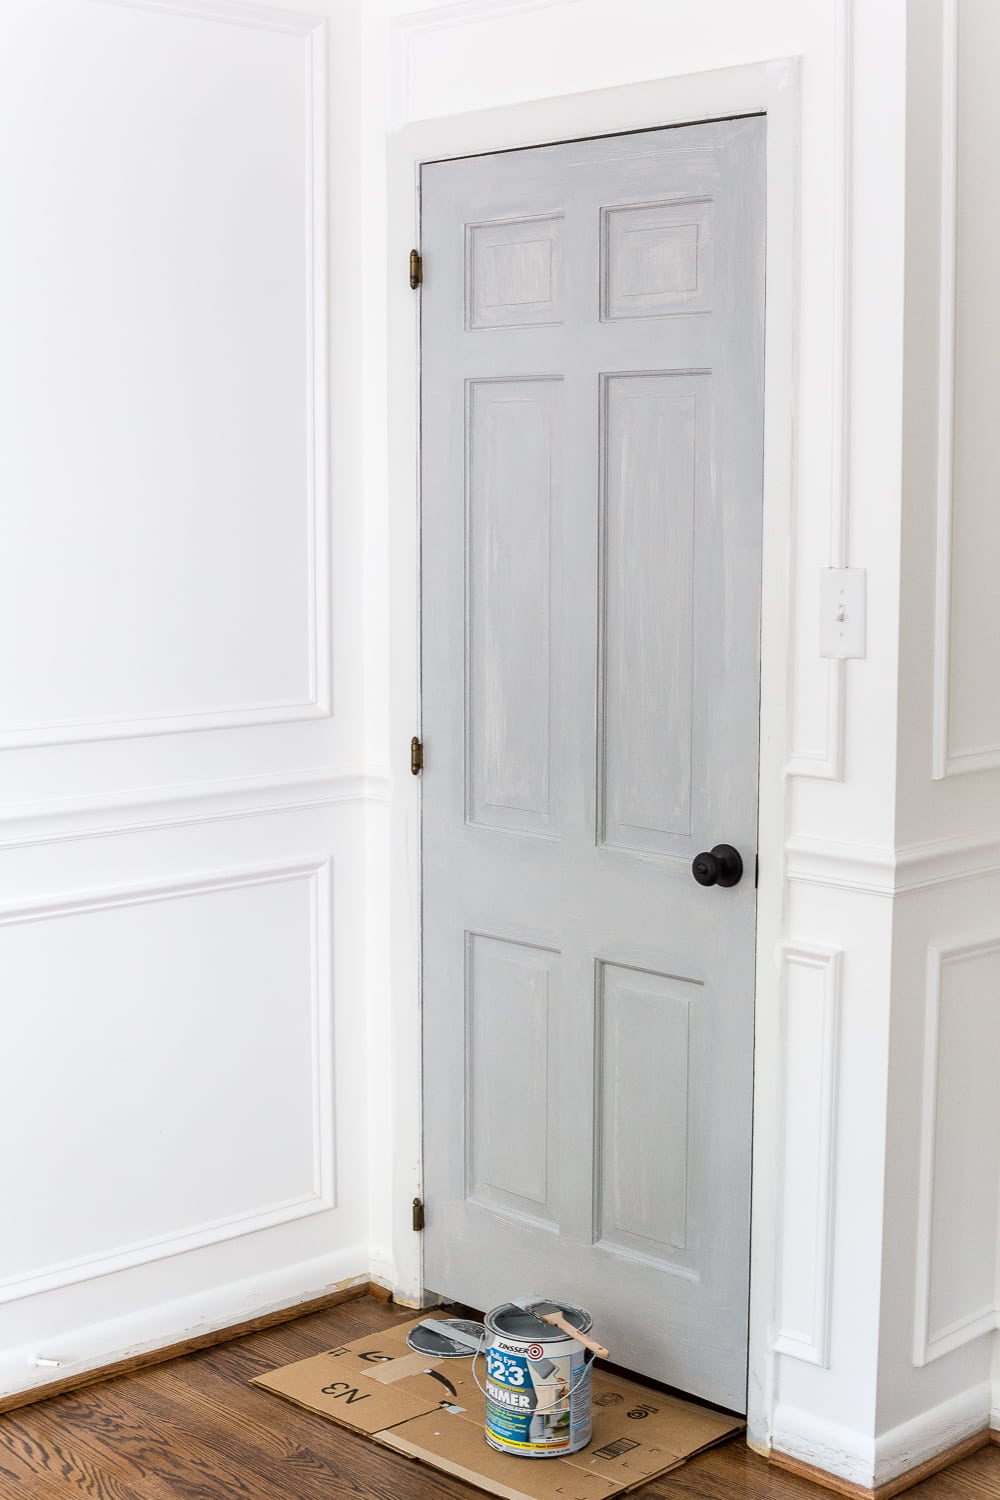 How to paint interior doors bless 39 er house - Interior painting ideas pinterest ...